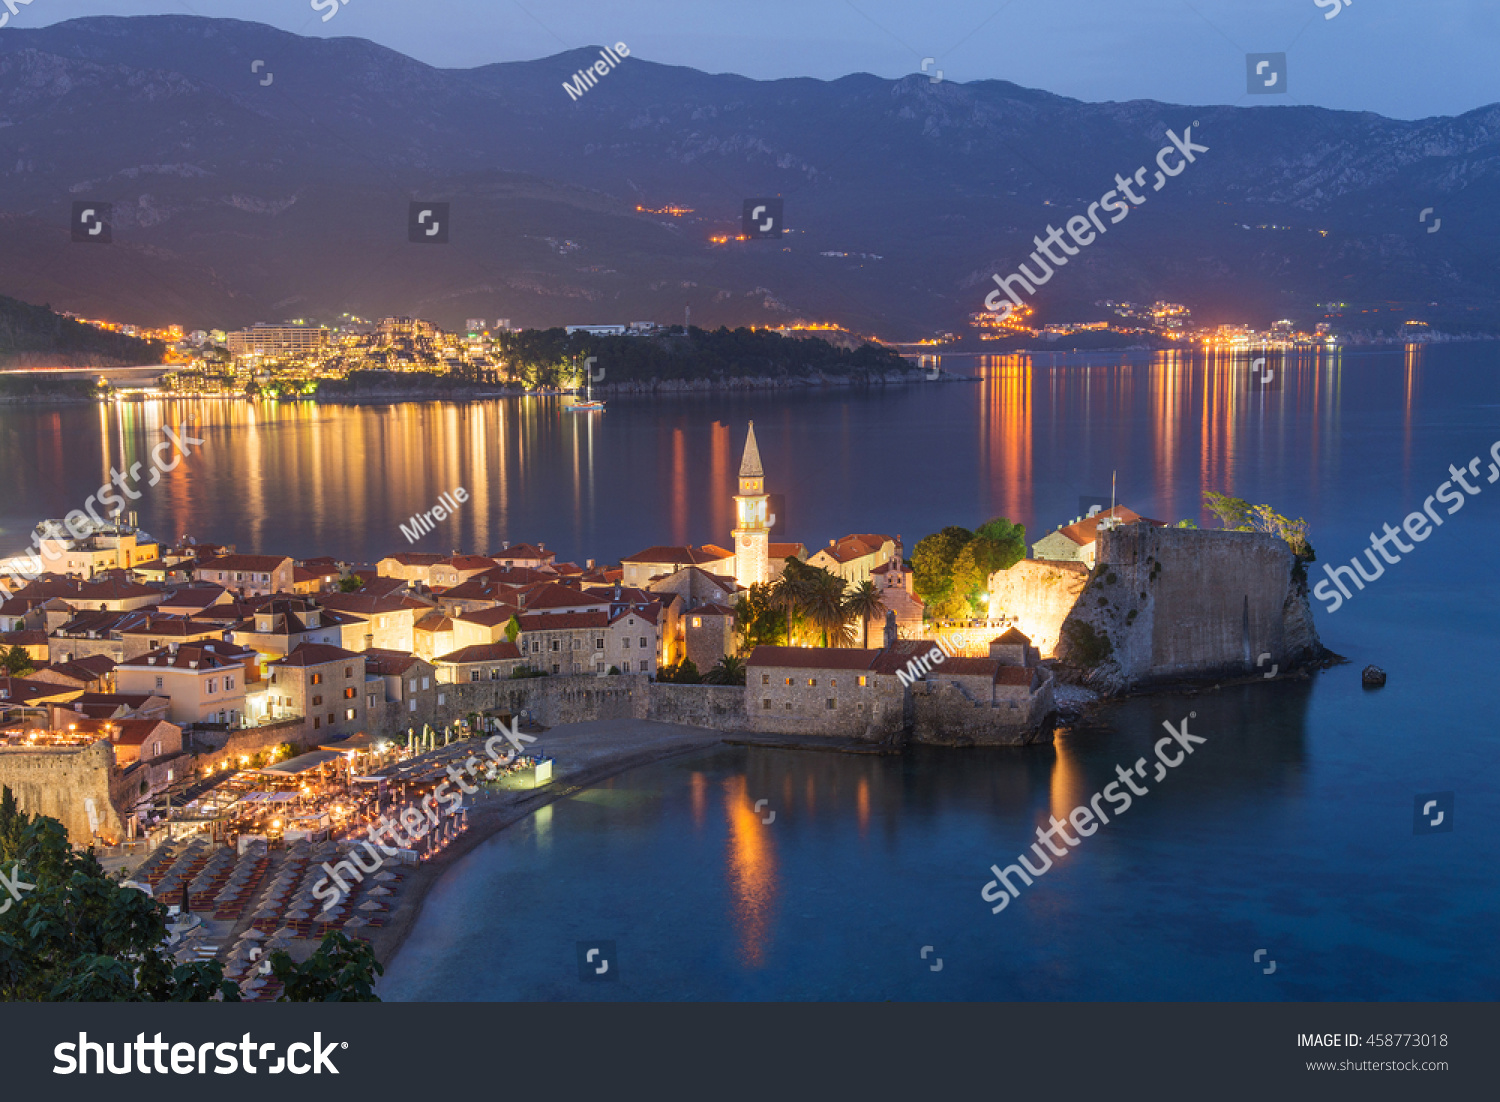 Budva Old Medieval Walled City Lights At Night. Center Of Montenegrin  Tourism, Medieval Walled